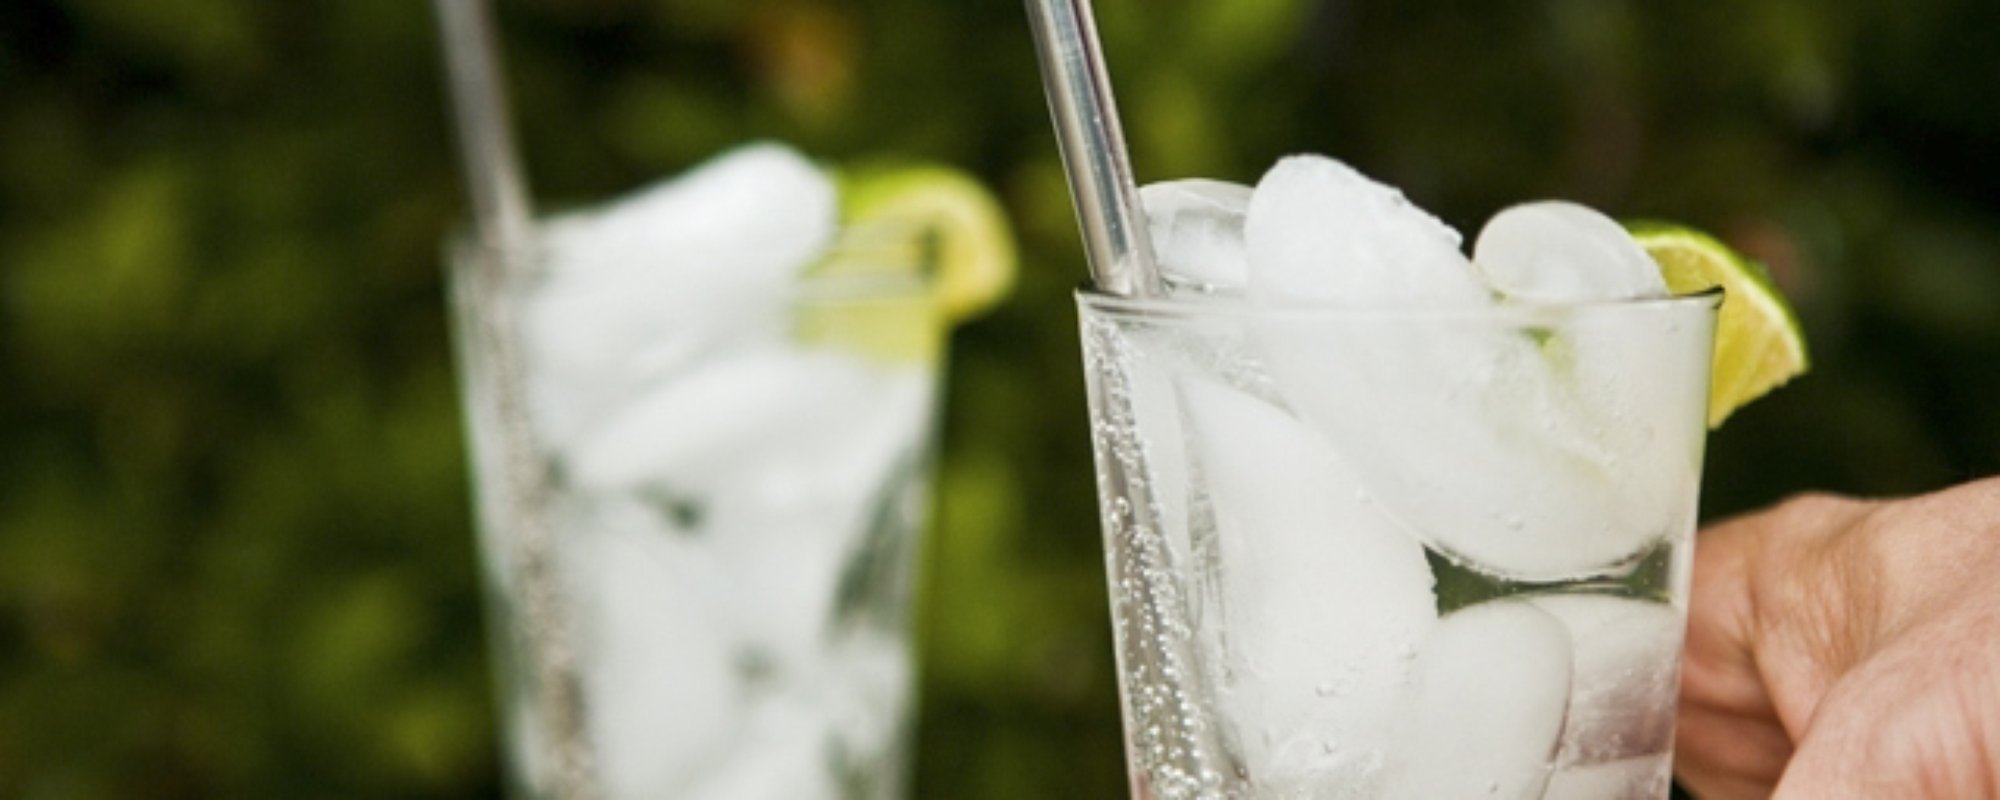 Stainless Steel Straws - The Top 3 Reasons to Own One